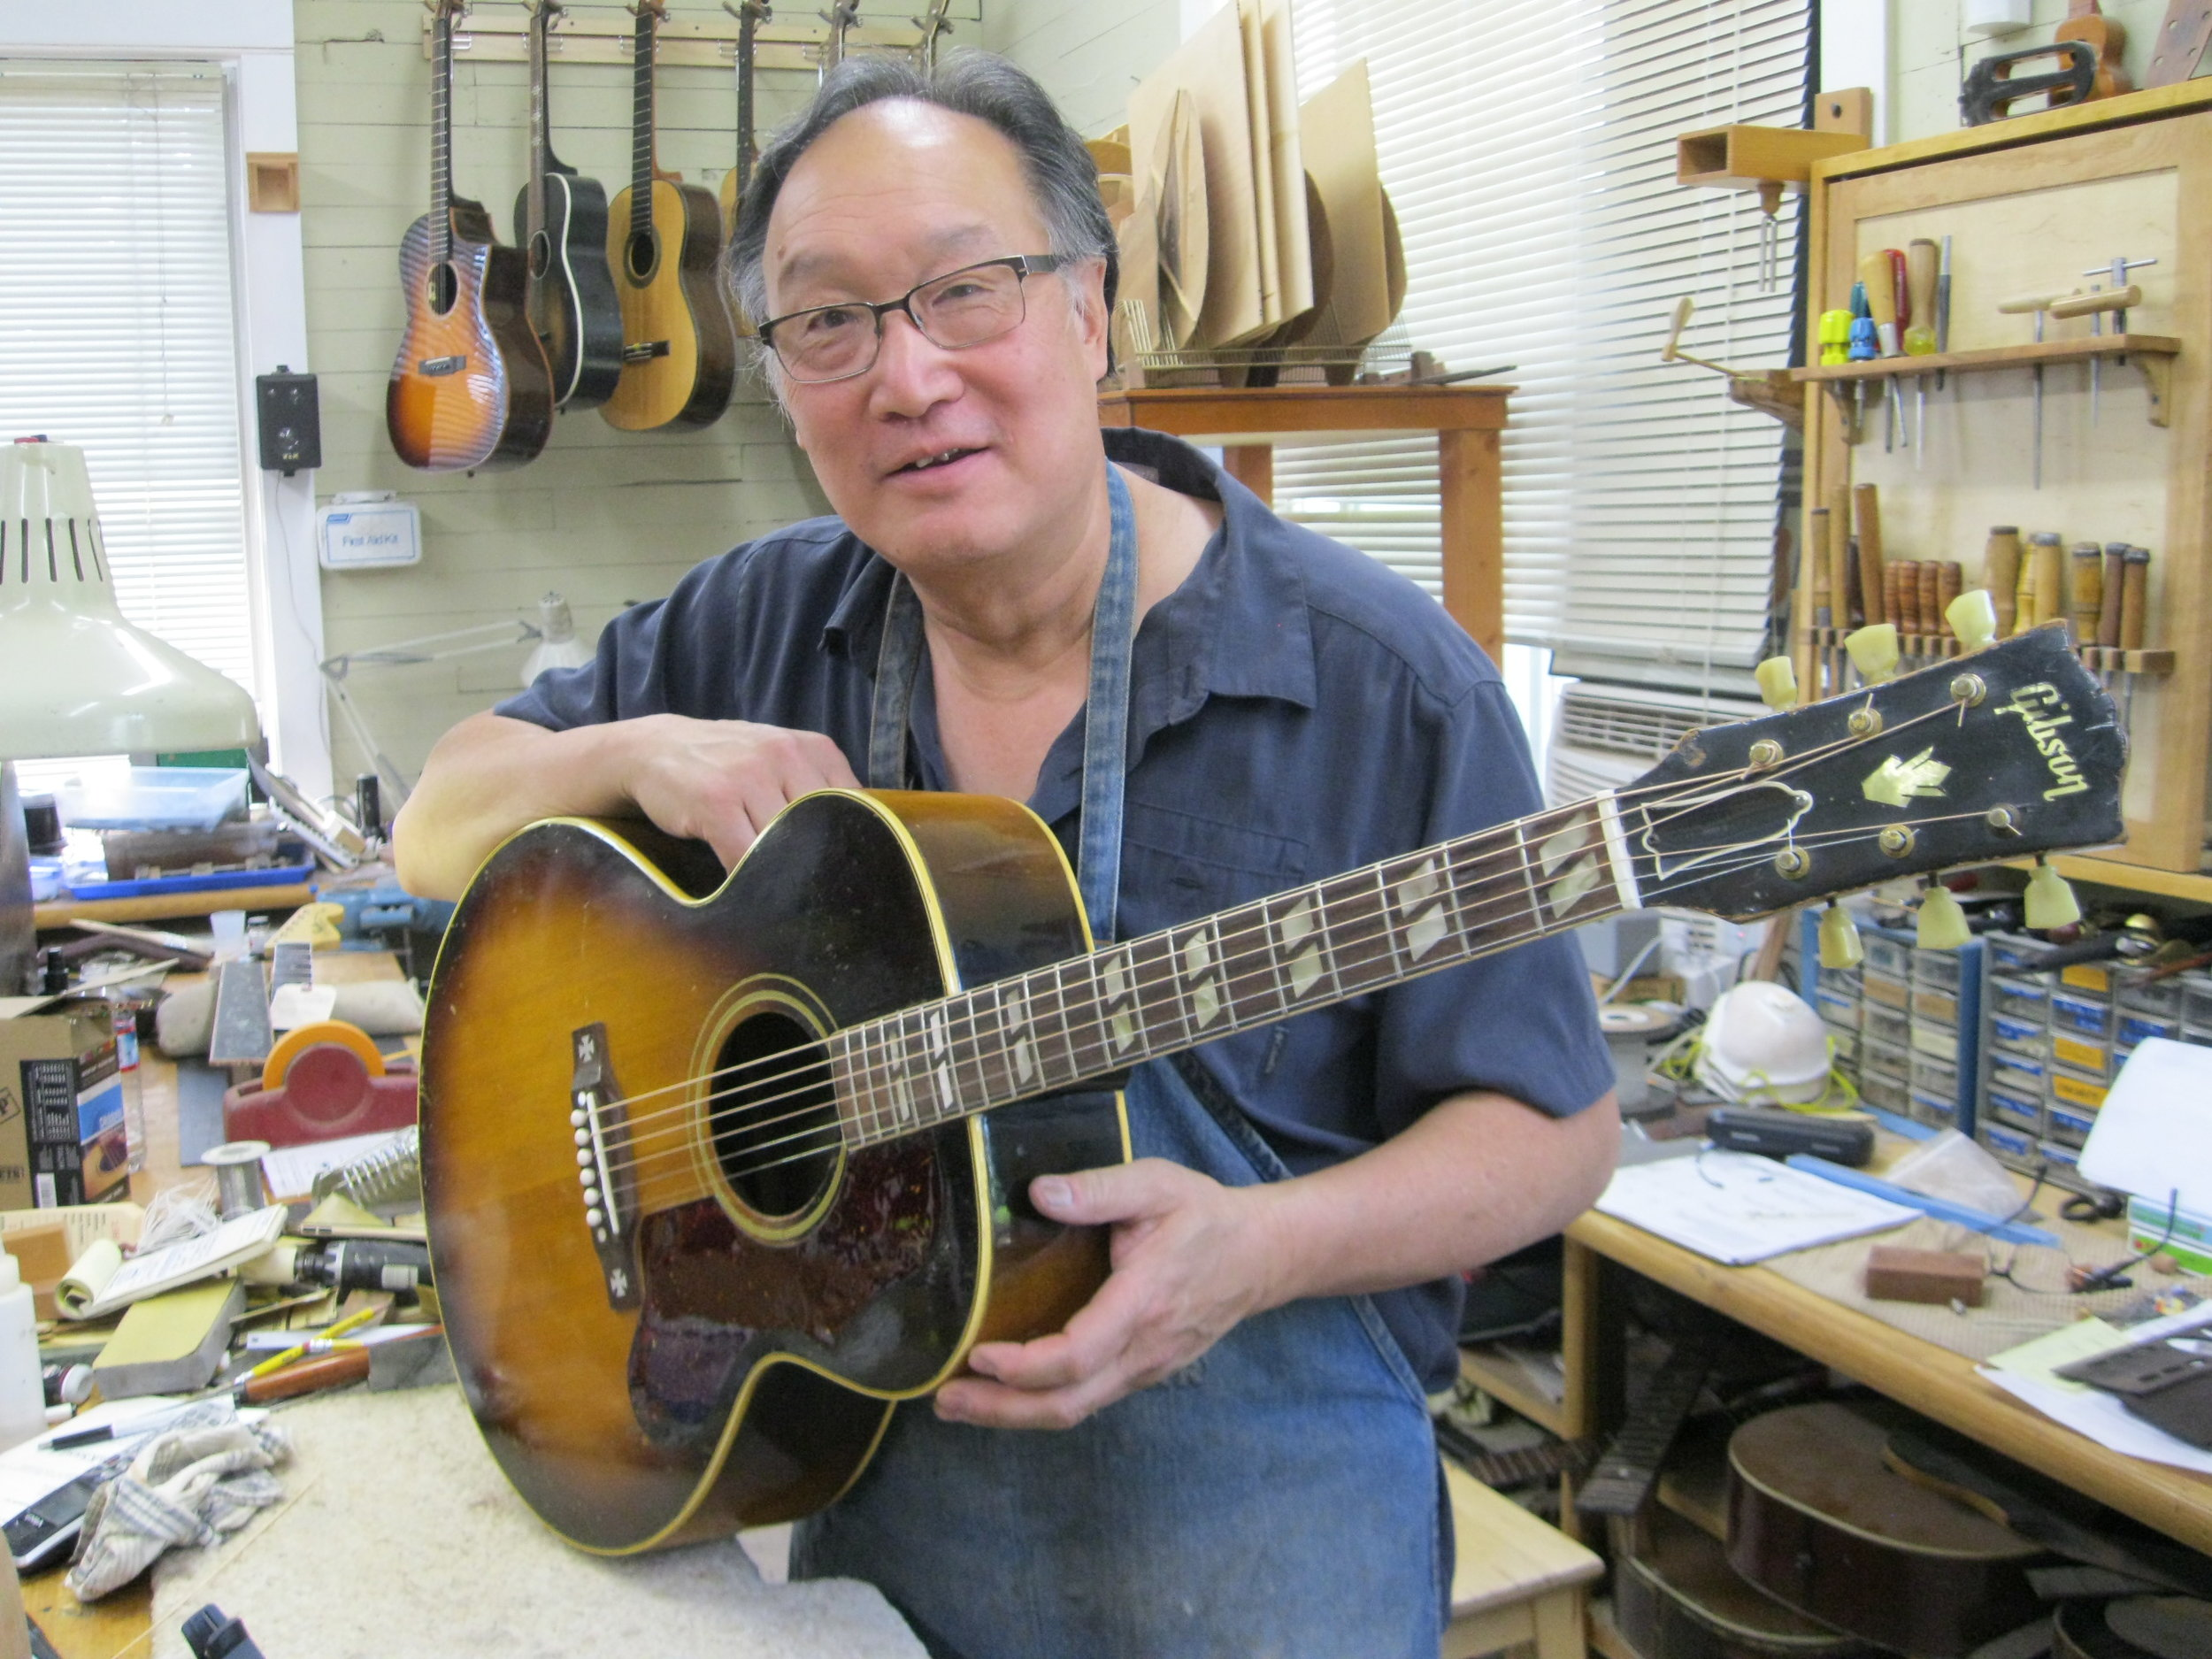 Portland luthier Kerry Char restored this 1952 Gibson J-185  that needed a neck reset, refret, loose braces and many more issues. He did a great job.